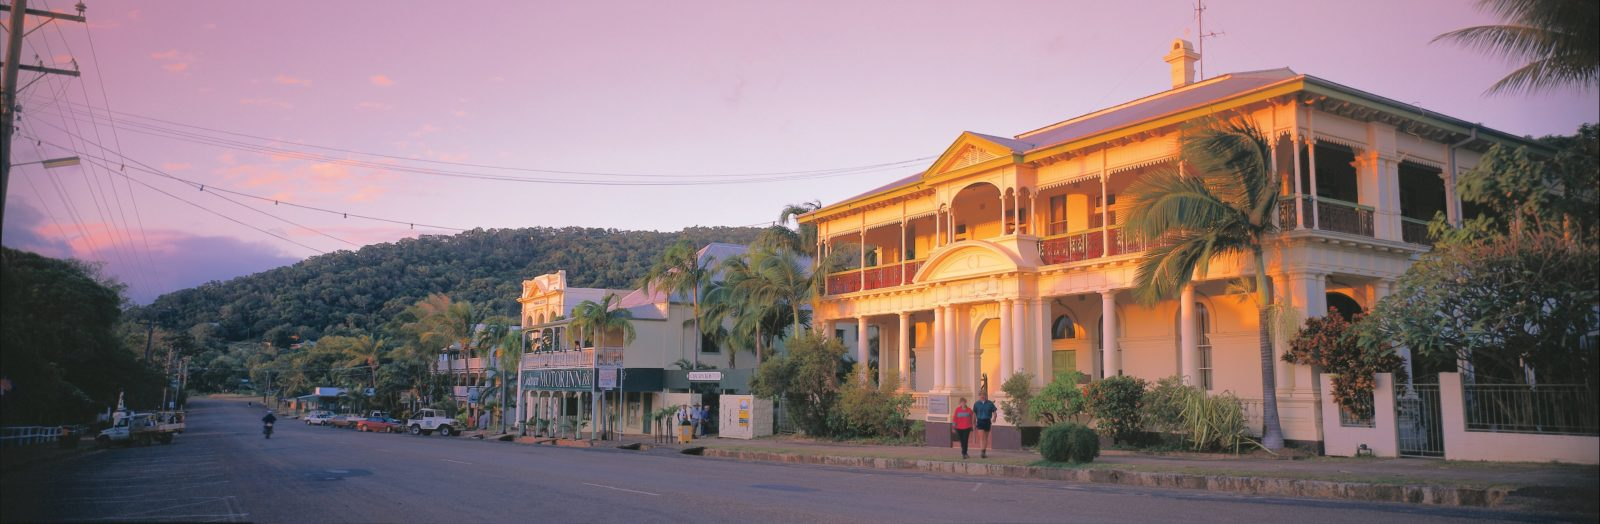 Cooktown streetscape